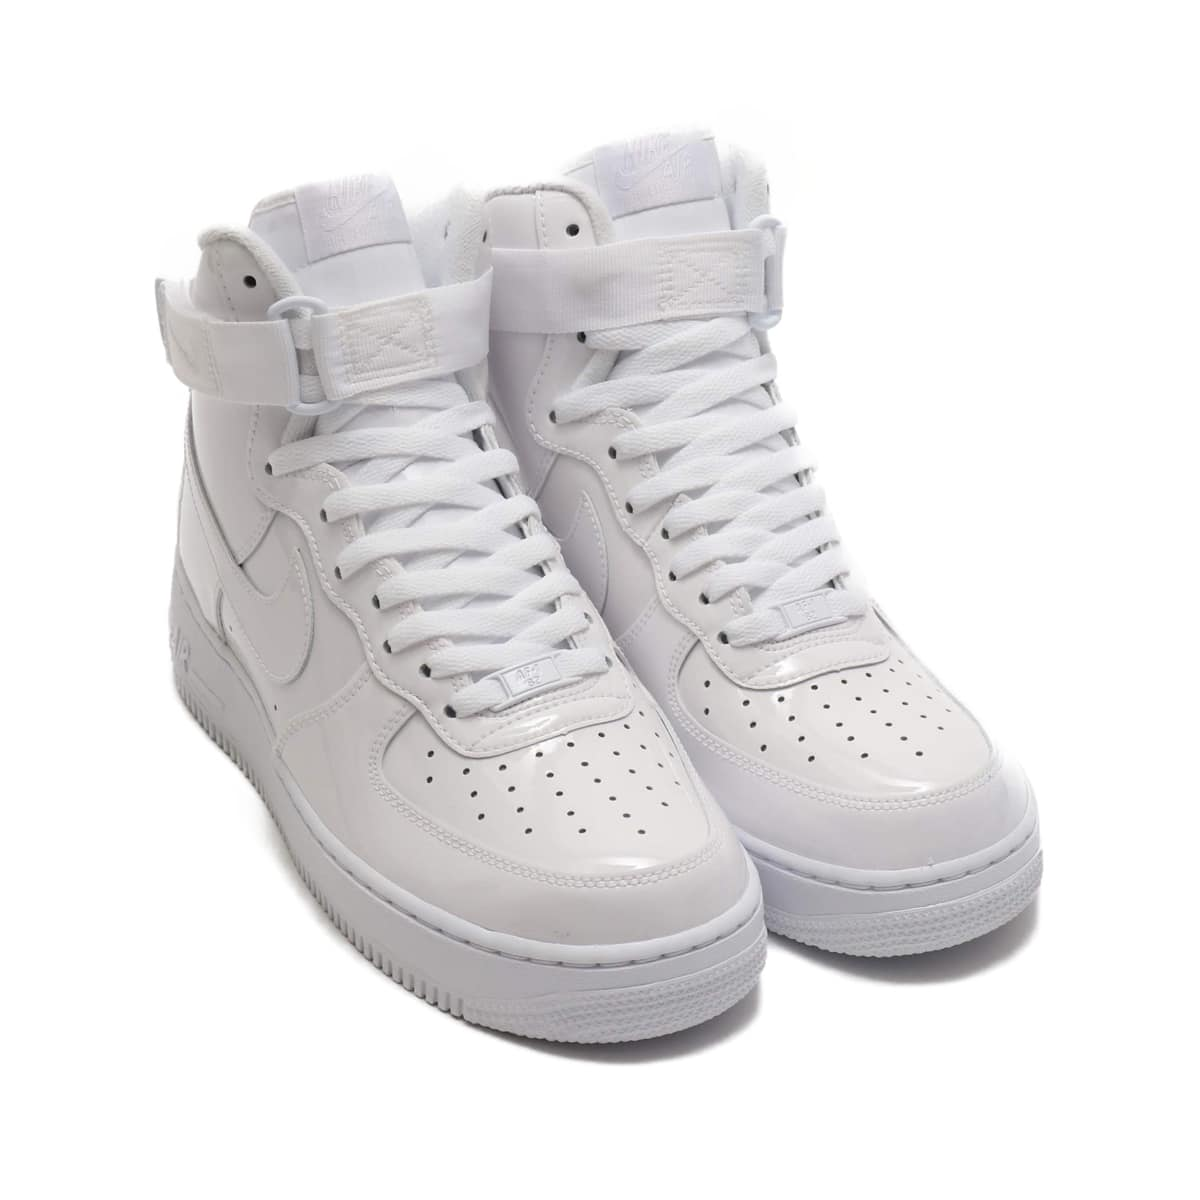 NIKE AIR FORCE 1 HI RETRO QS WHITE/WHITE-WHITE 19SU-S_photo_large